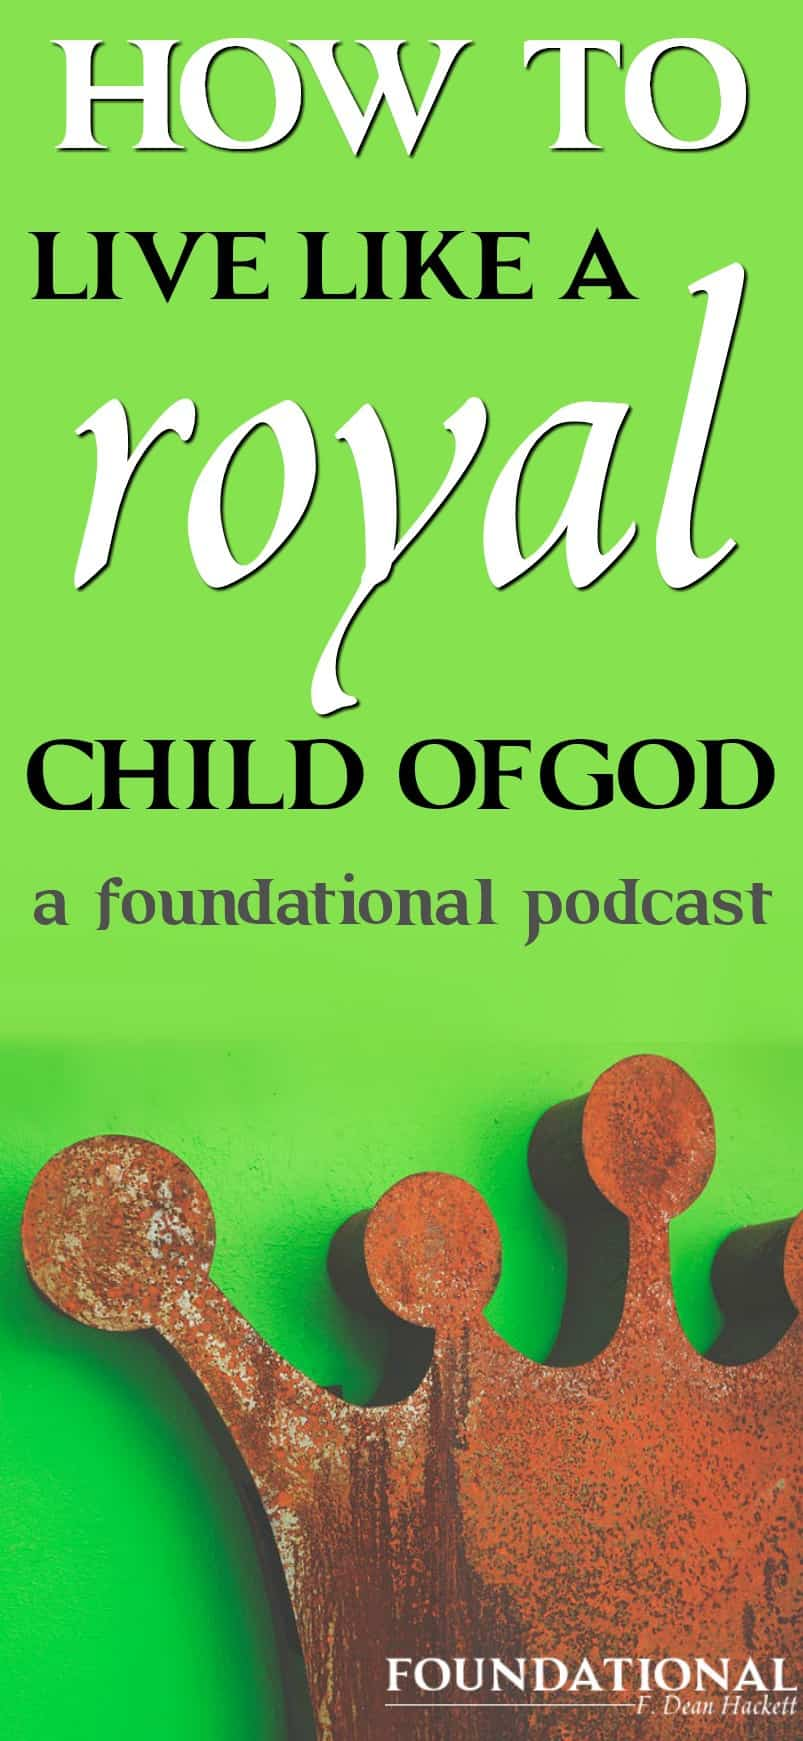 Most Christians don't know their identity as a child of God; they don't feel comfortable in their role as a royal son and daughter of God and so they live beneath their potential and the calling God has on their life.